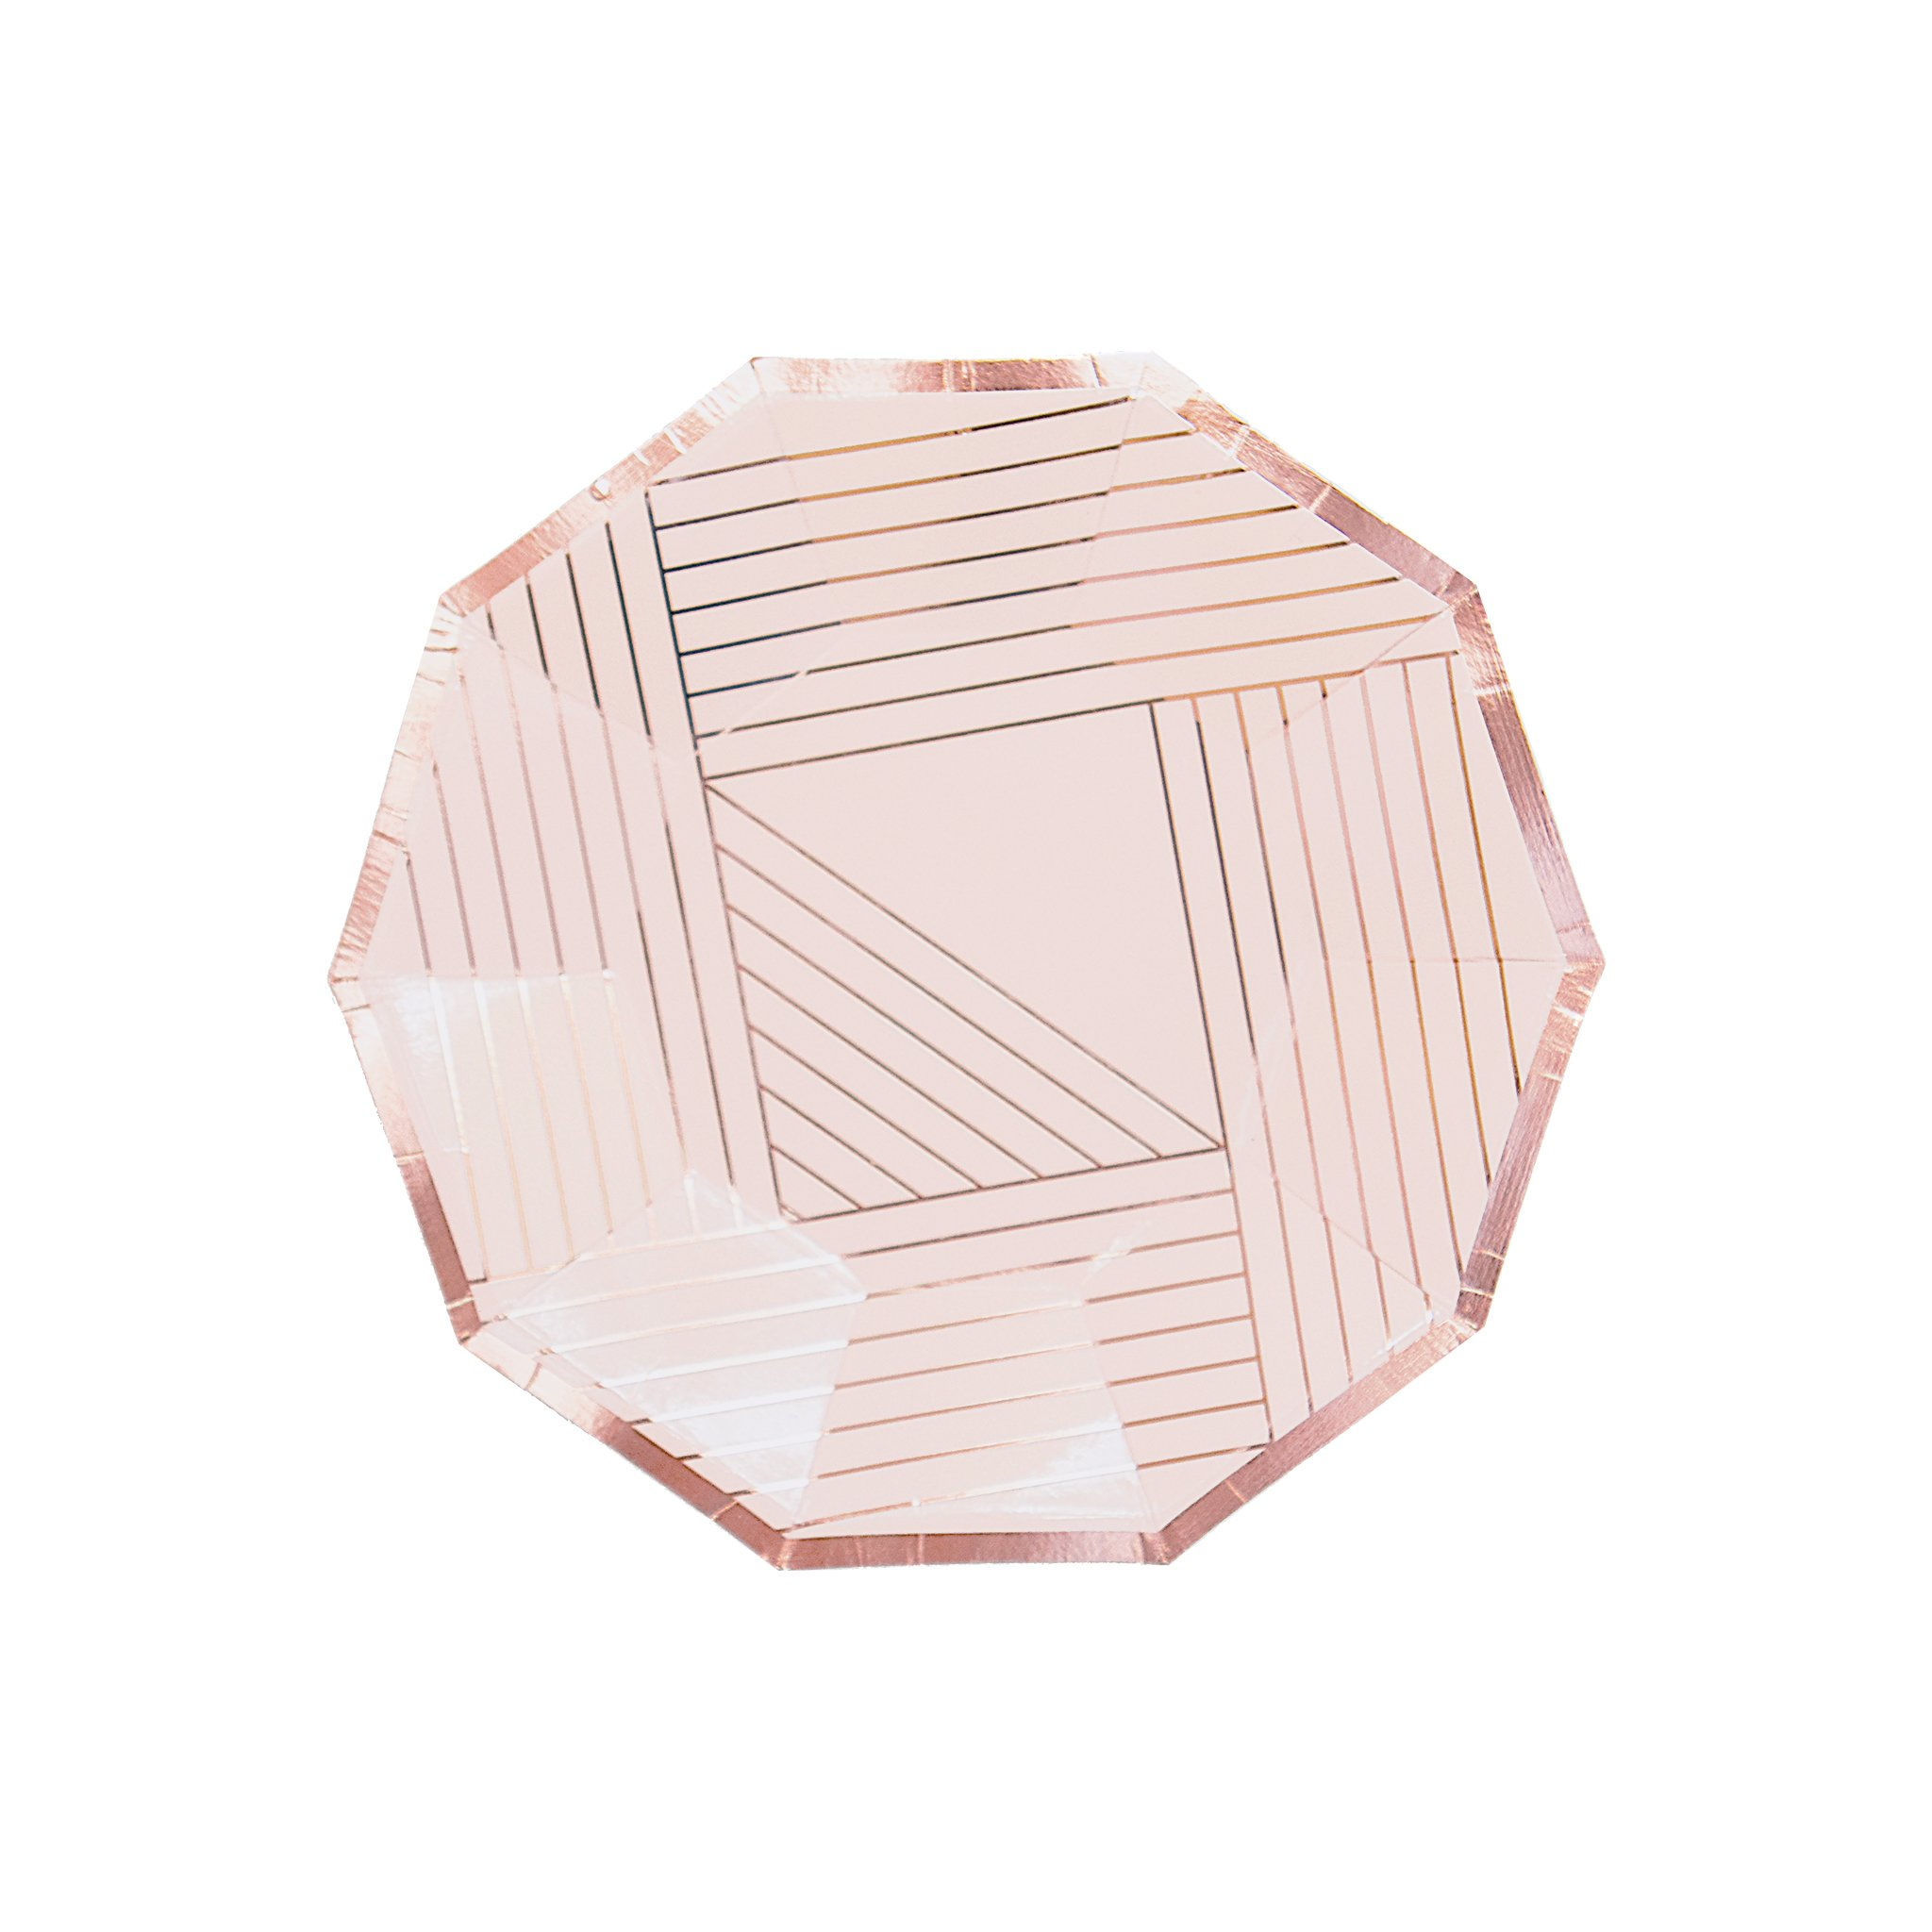 Pale Pink w Rose Gold Striped Small Paper Plates - Birthday, Wedding, Showers Disposable Party Plates - Harlow & Grey Manhattan (8 Count)